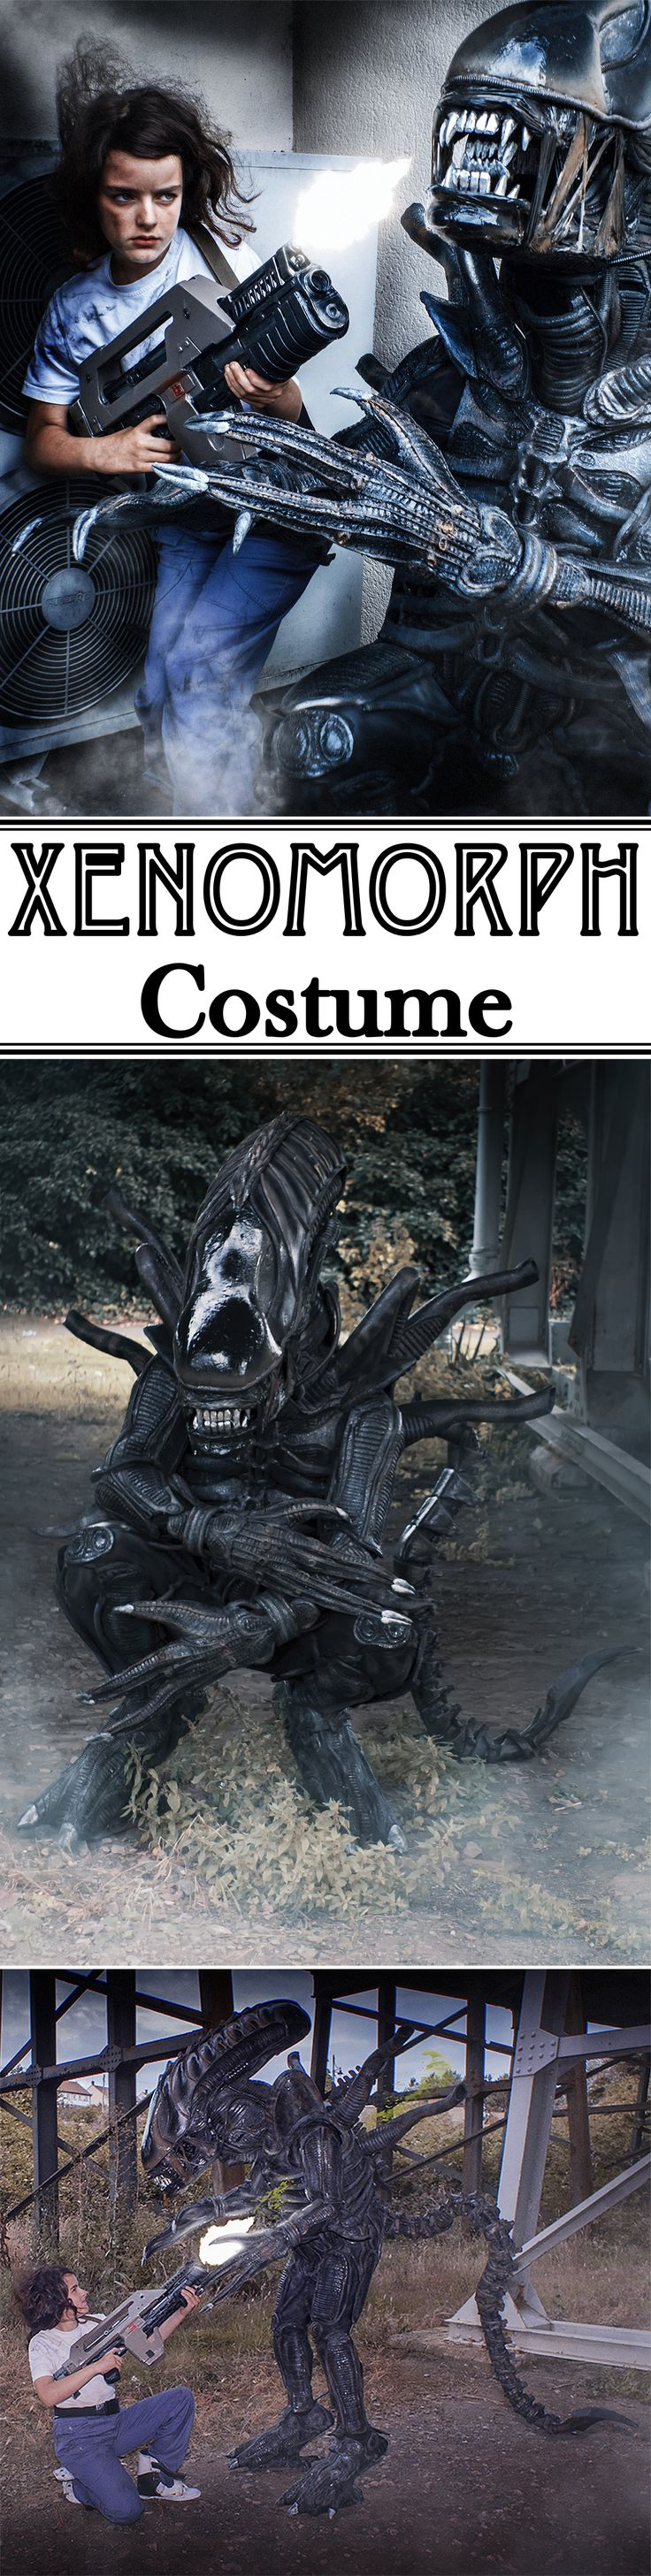 Full-size Xenomorph Alien costume!